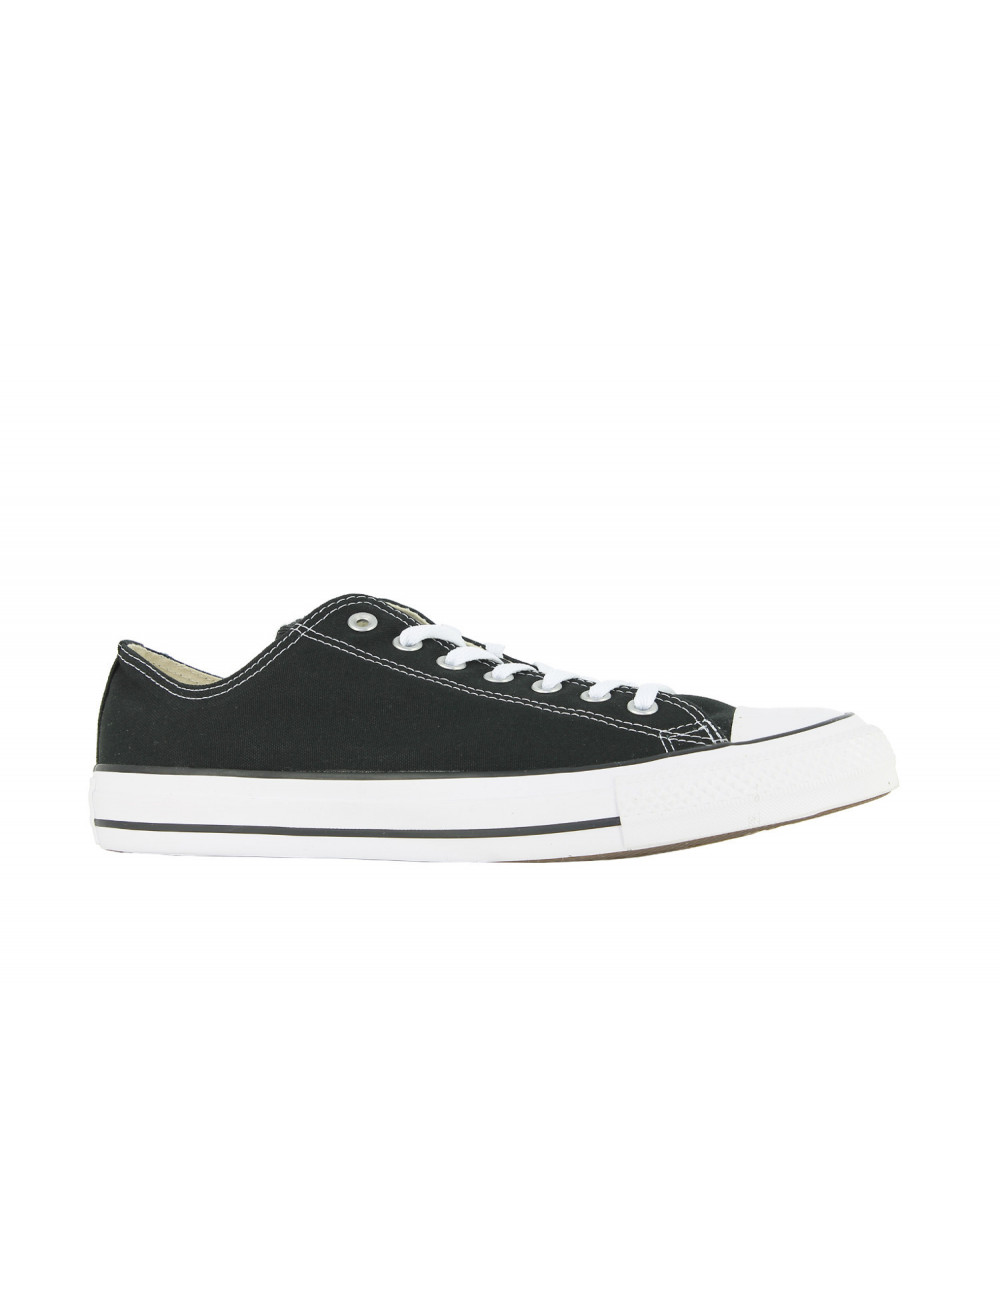 converse canvas bassa